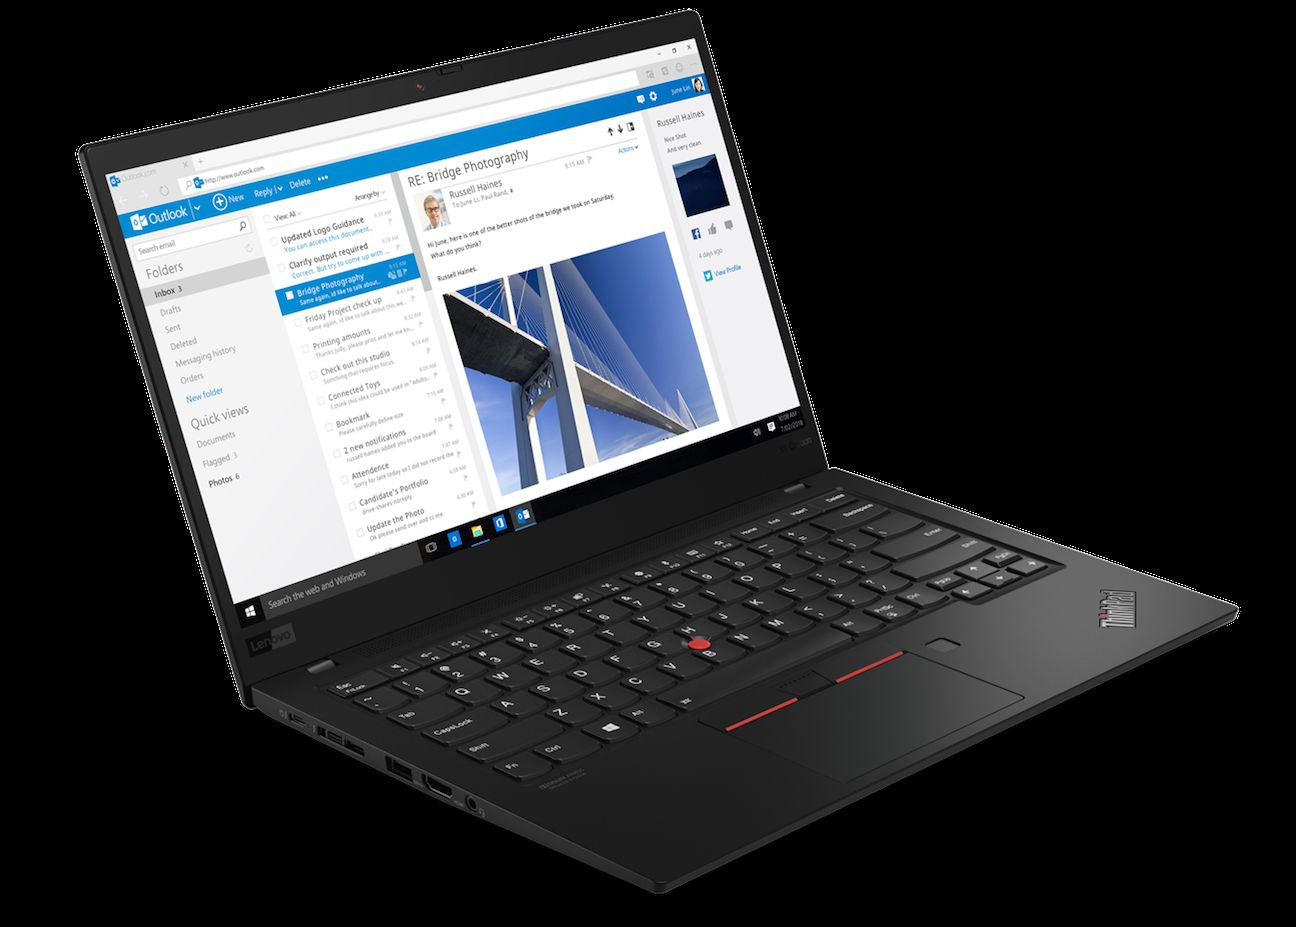 Before dipping a toe in the new ThinkPad high-end, make sure your